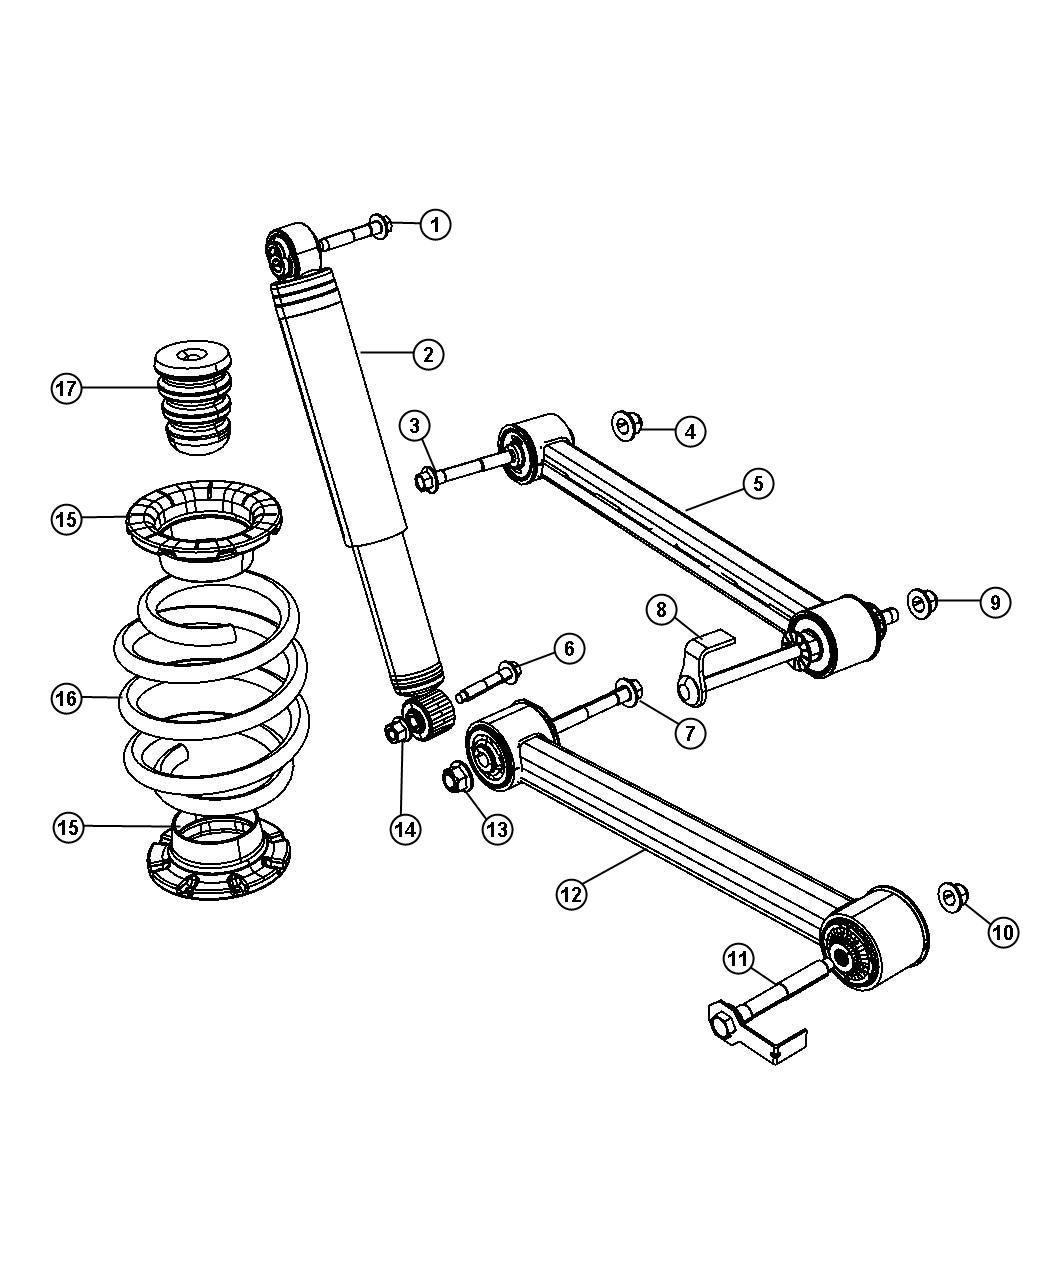 2008 Jeep Liberty Shock absorber. Suspension. Rear. Duty